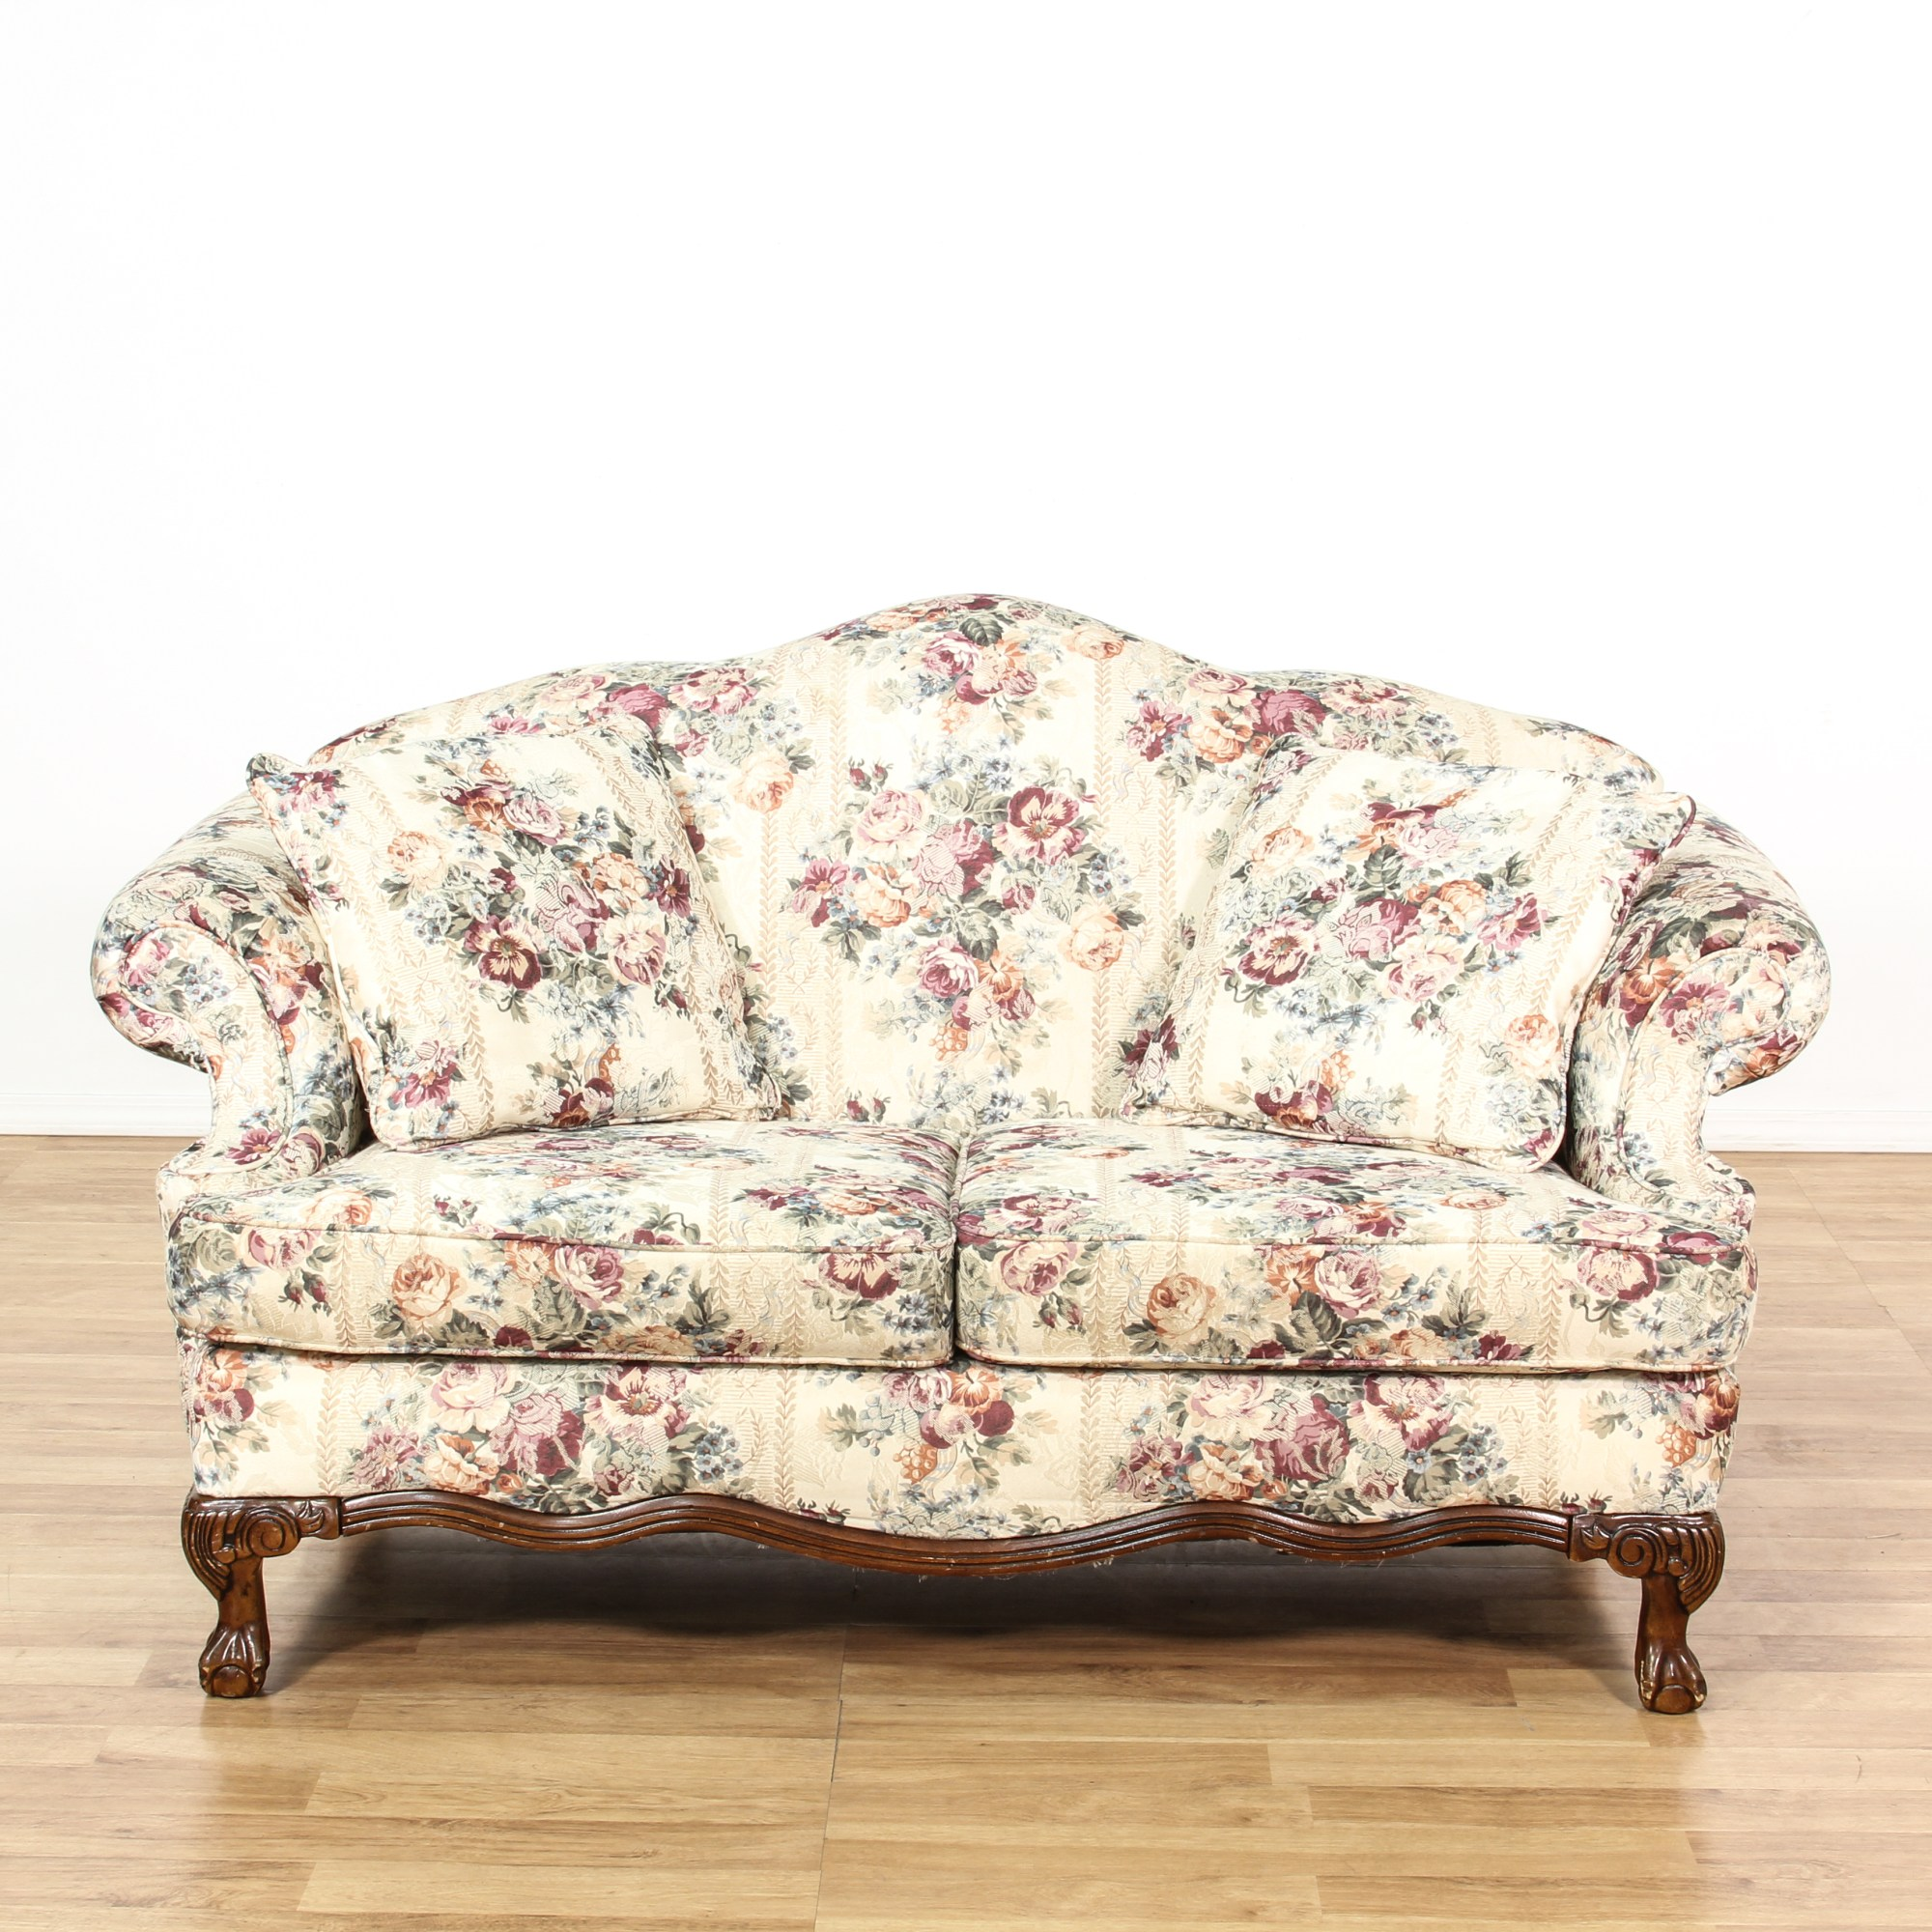 Antike Sofas & Loveseats Curved Back White Floral Loveseat Sofa Loveseat Vintage